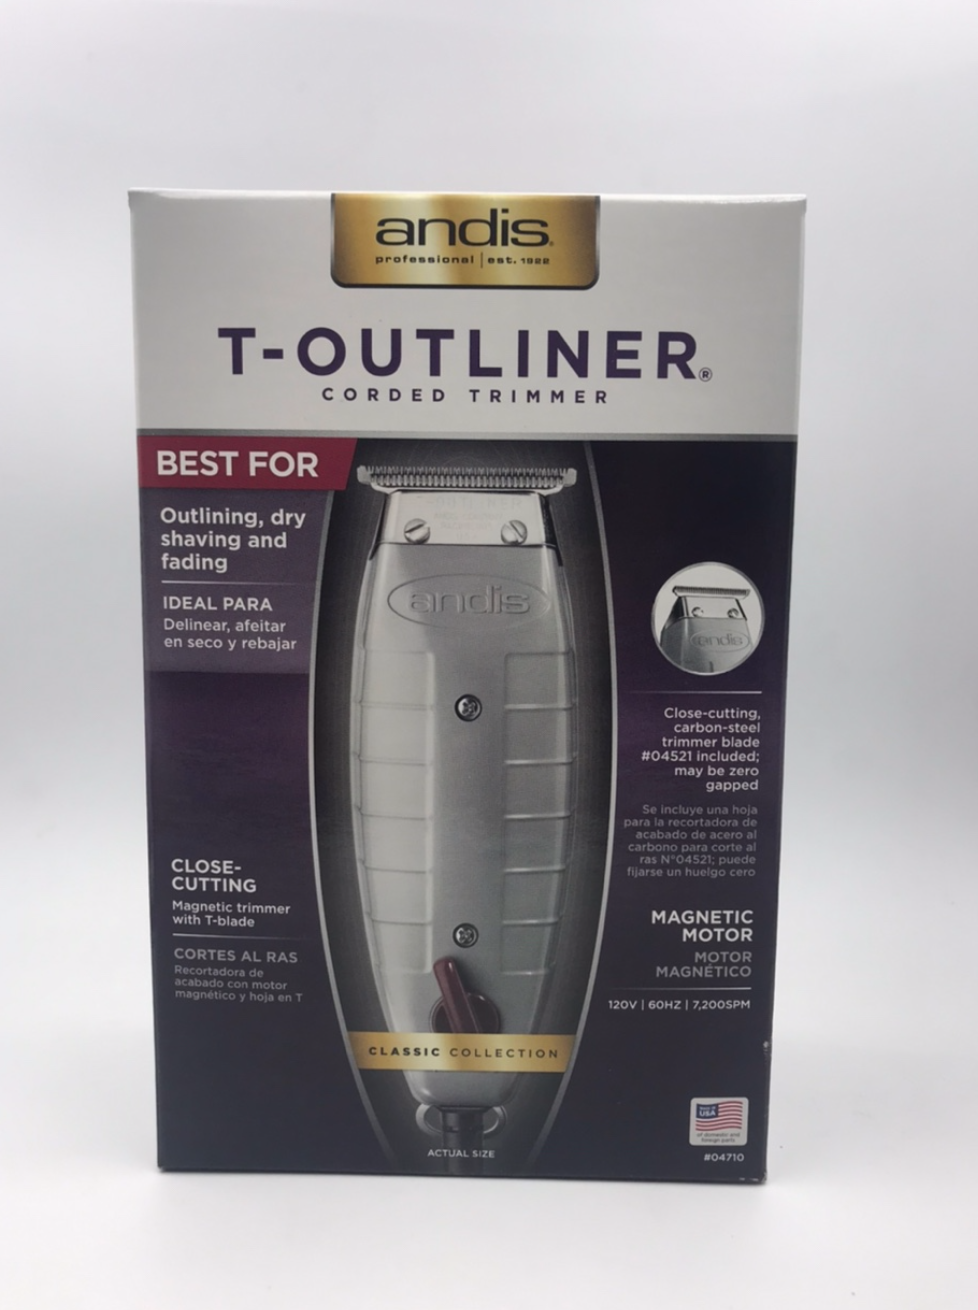 Primary image for ANDIS T - OUTLINER CORDED TRIMMER #04710 MADE IN USA BEST FOR DRY SHAVING, FADIN